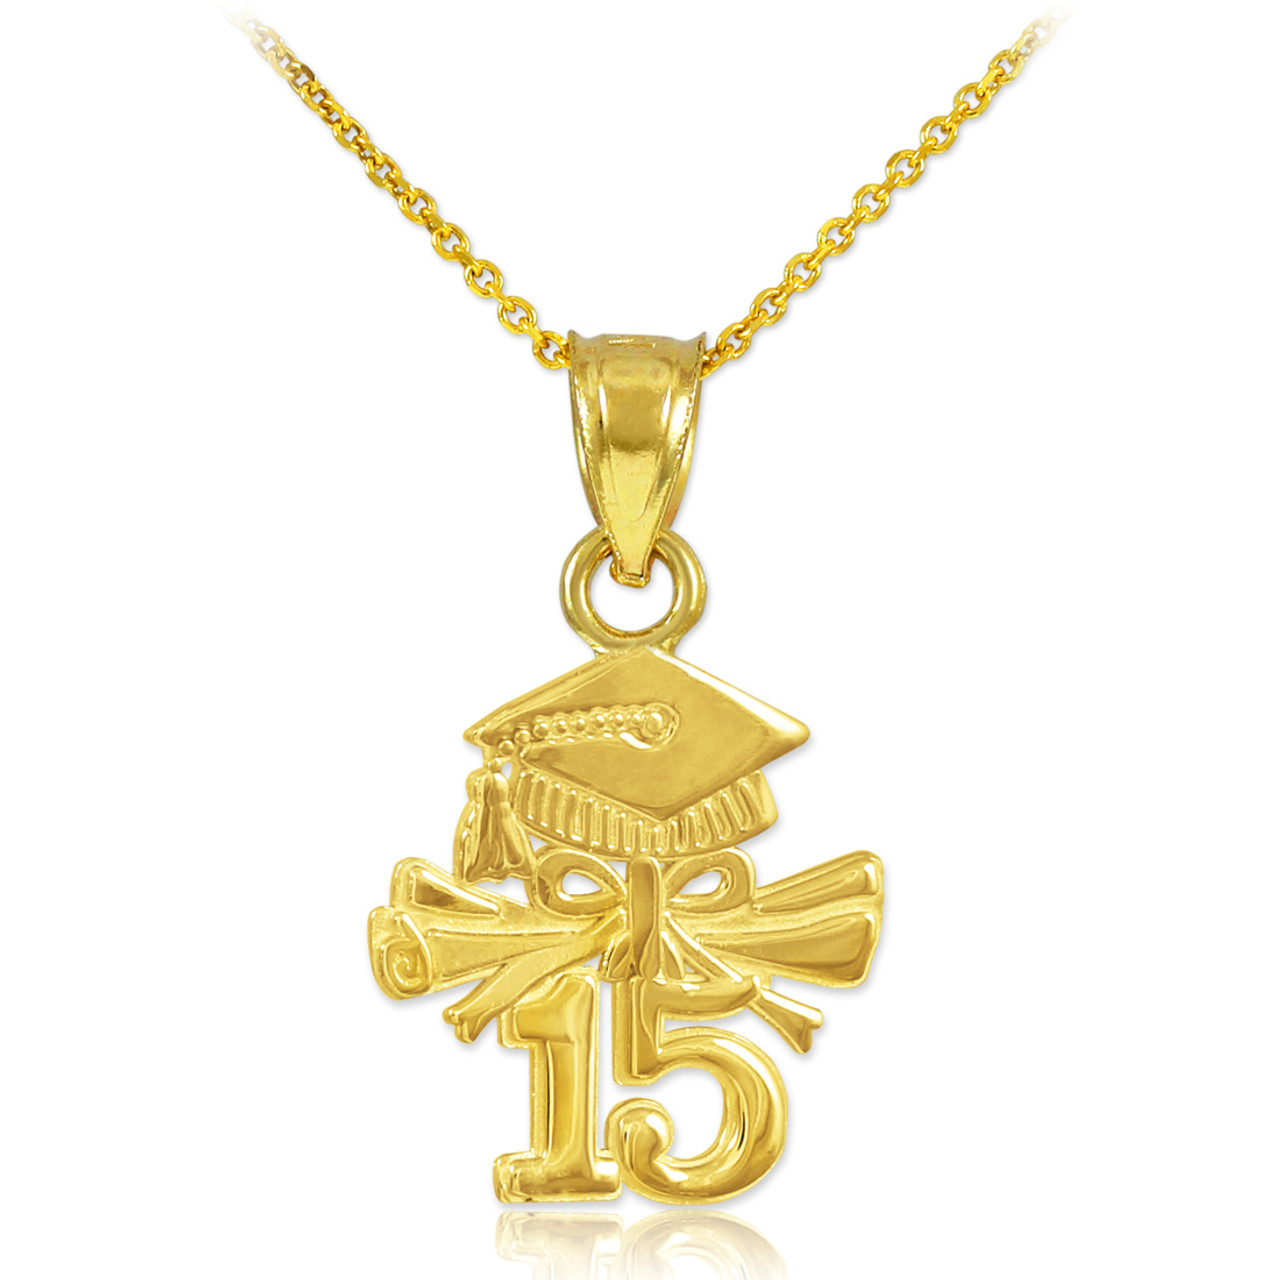 Gold 2015 Graduation Charm Necklace